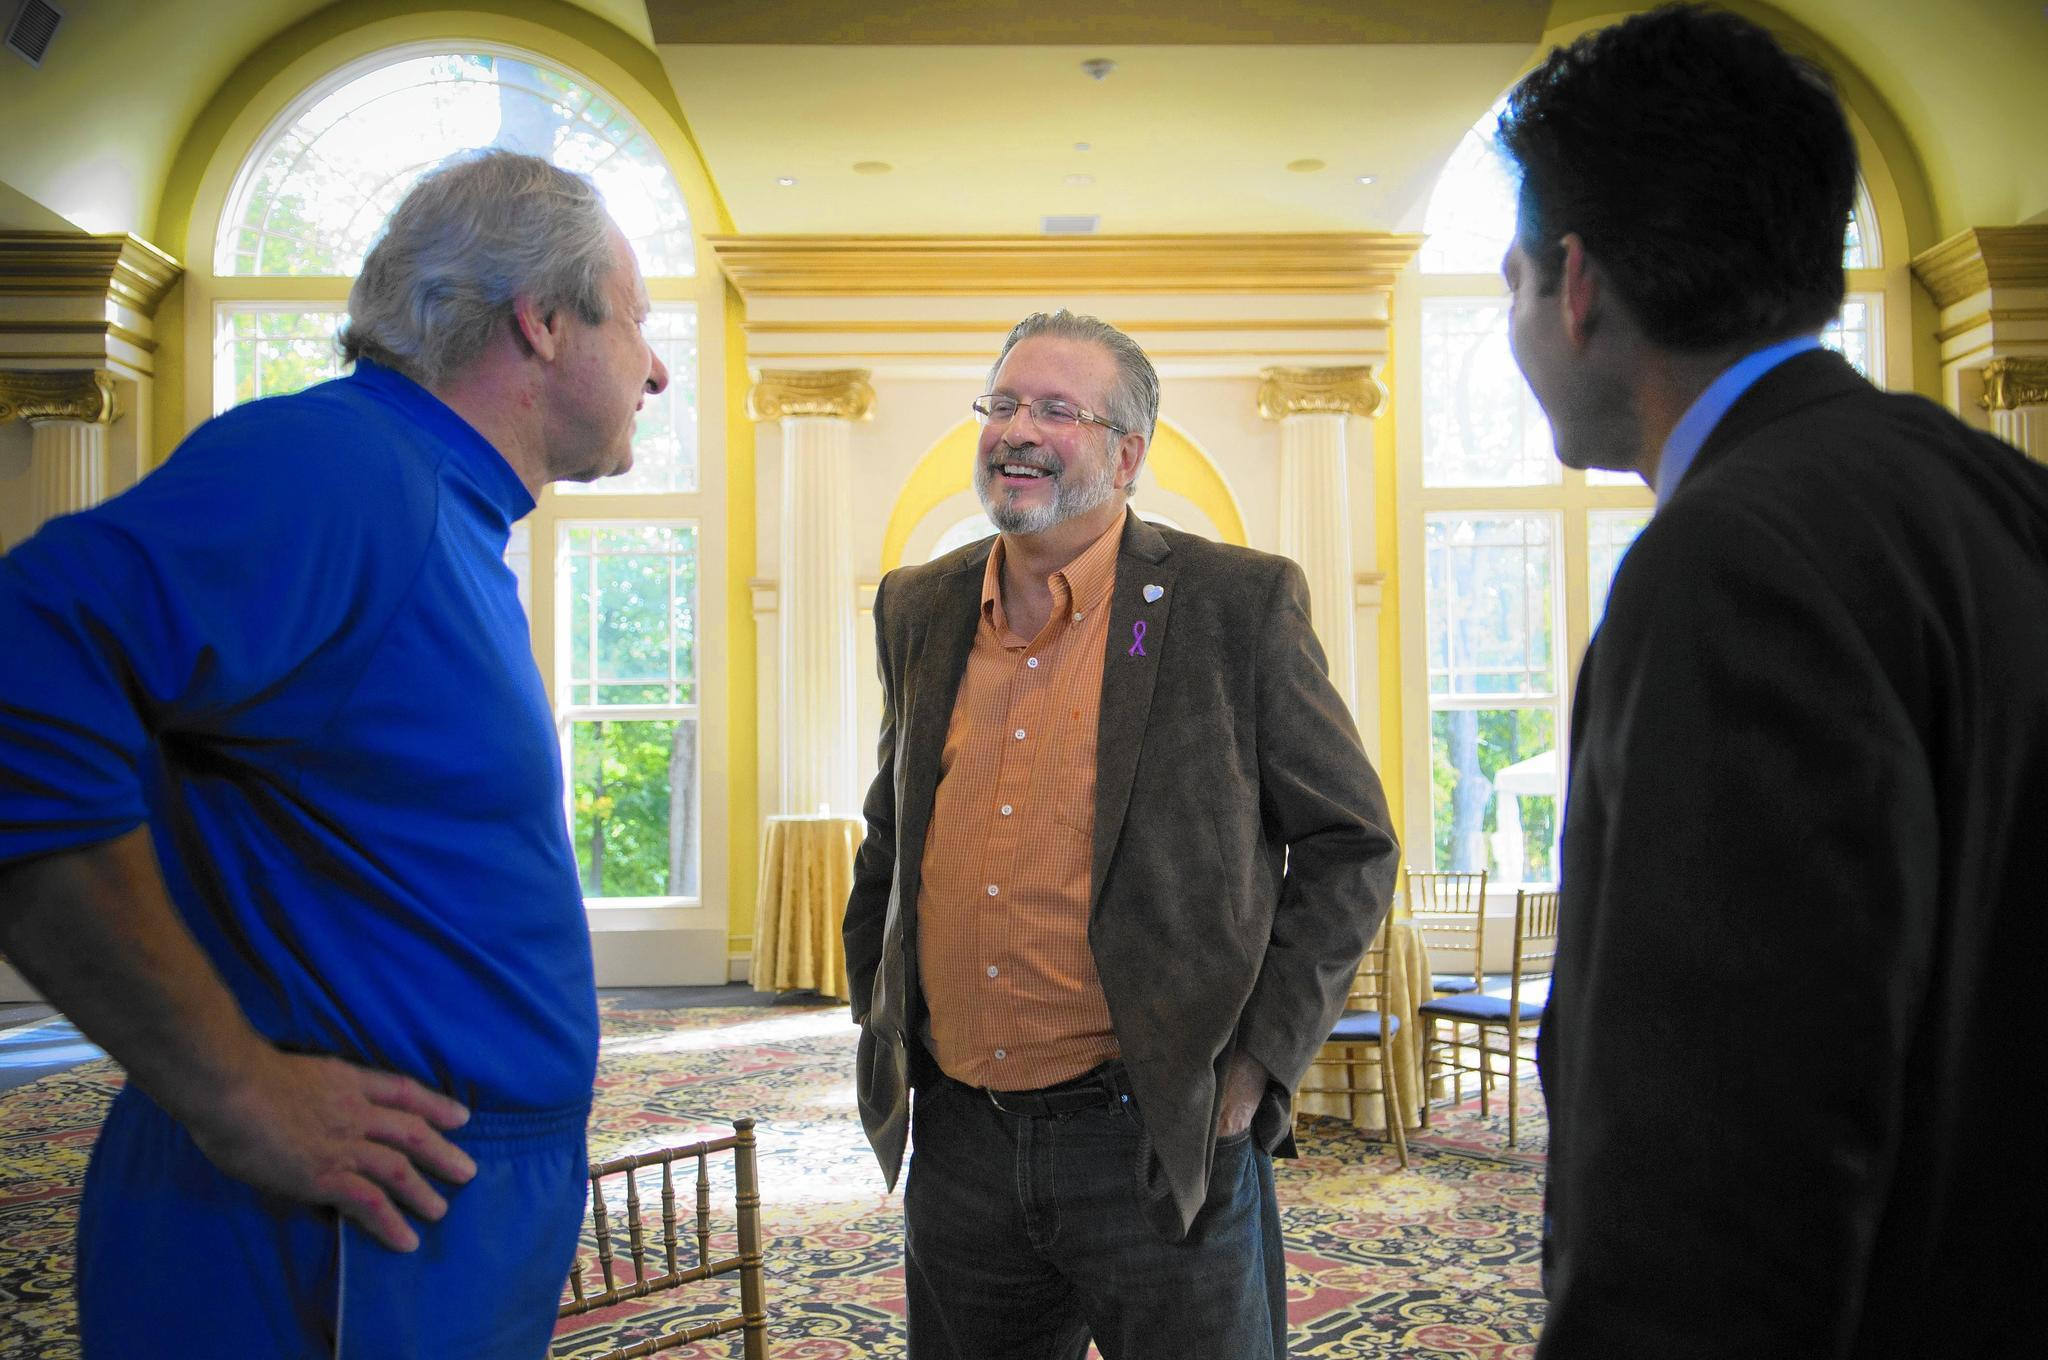 William Petit talks with Central Connecticut State University basketball coach Howie Dickenman, left, and Hartford attorney Eric Daniels at The Riverview in Simsbury where Petit was attending the launch of a social media campaign by The Interval House.